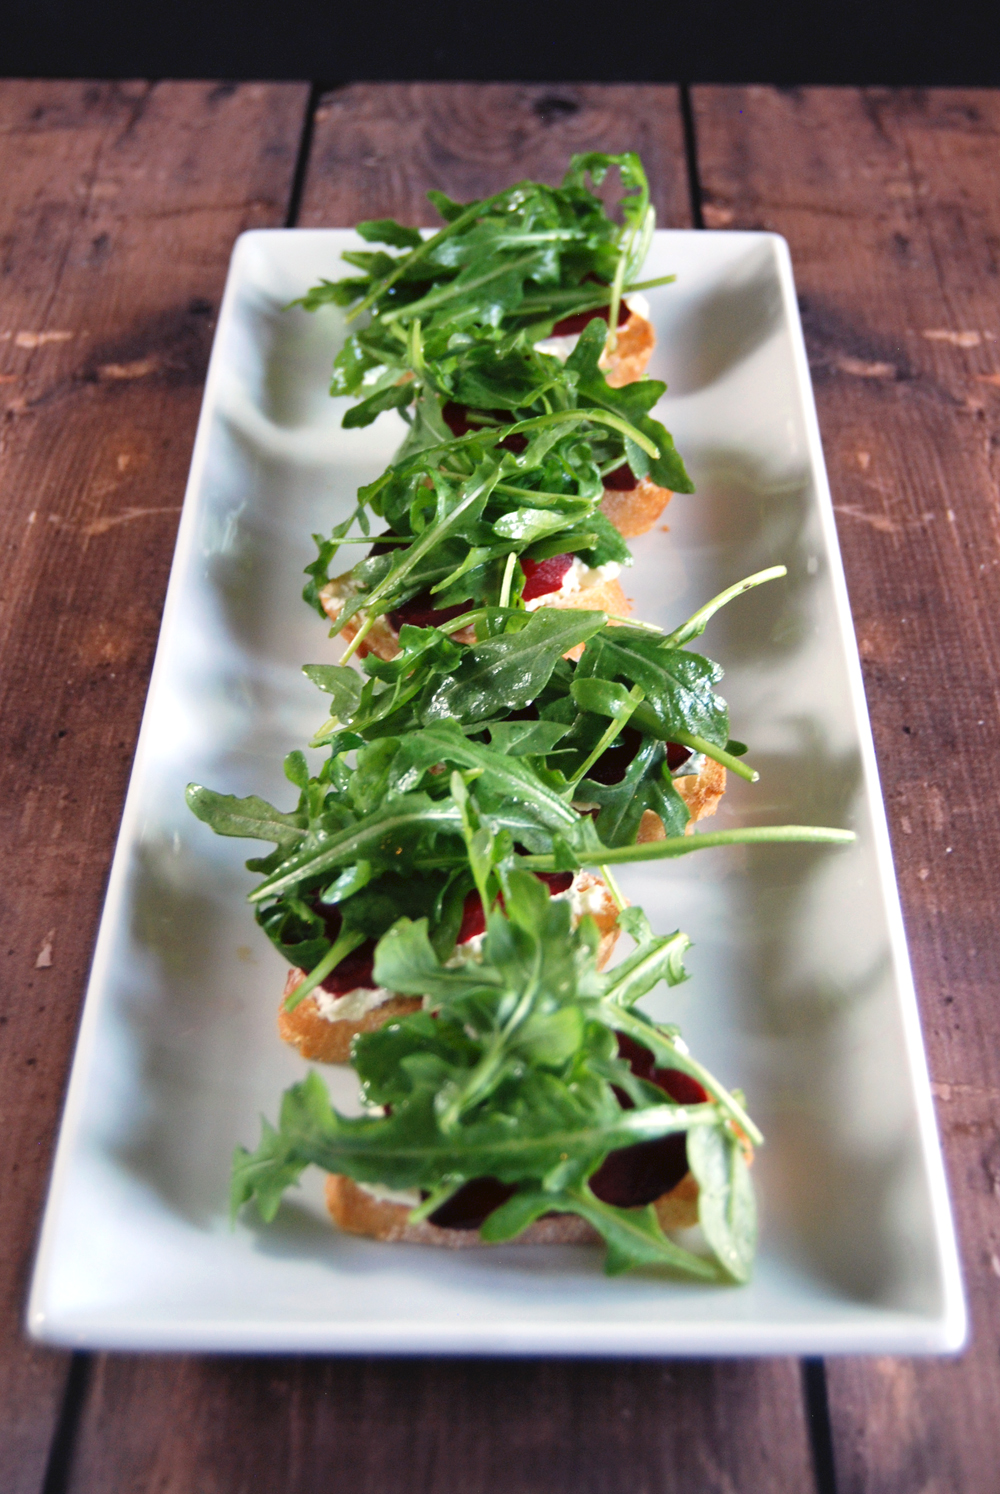 Herbed Goat Cheese Crostini with Roasted Beets and Arugula